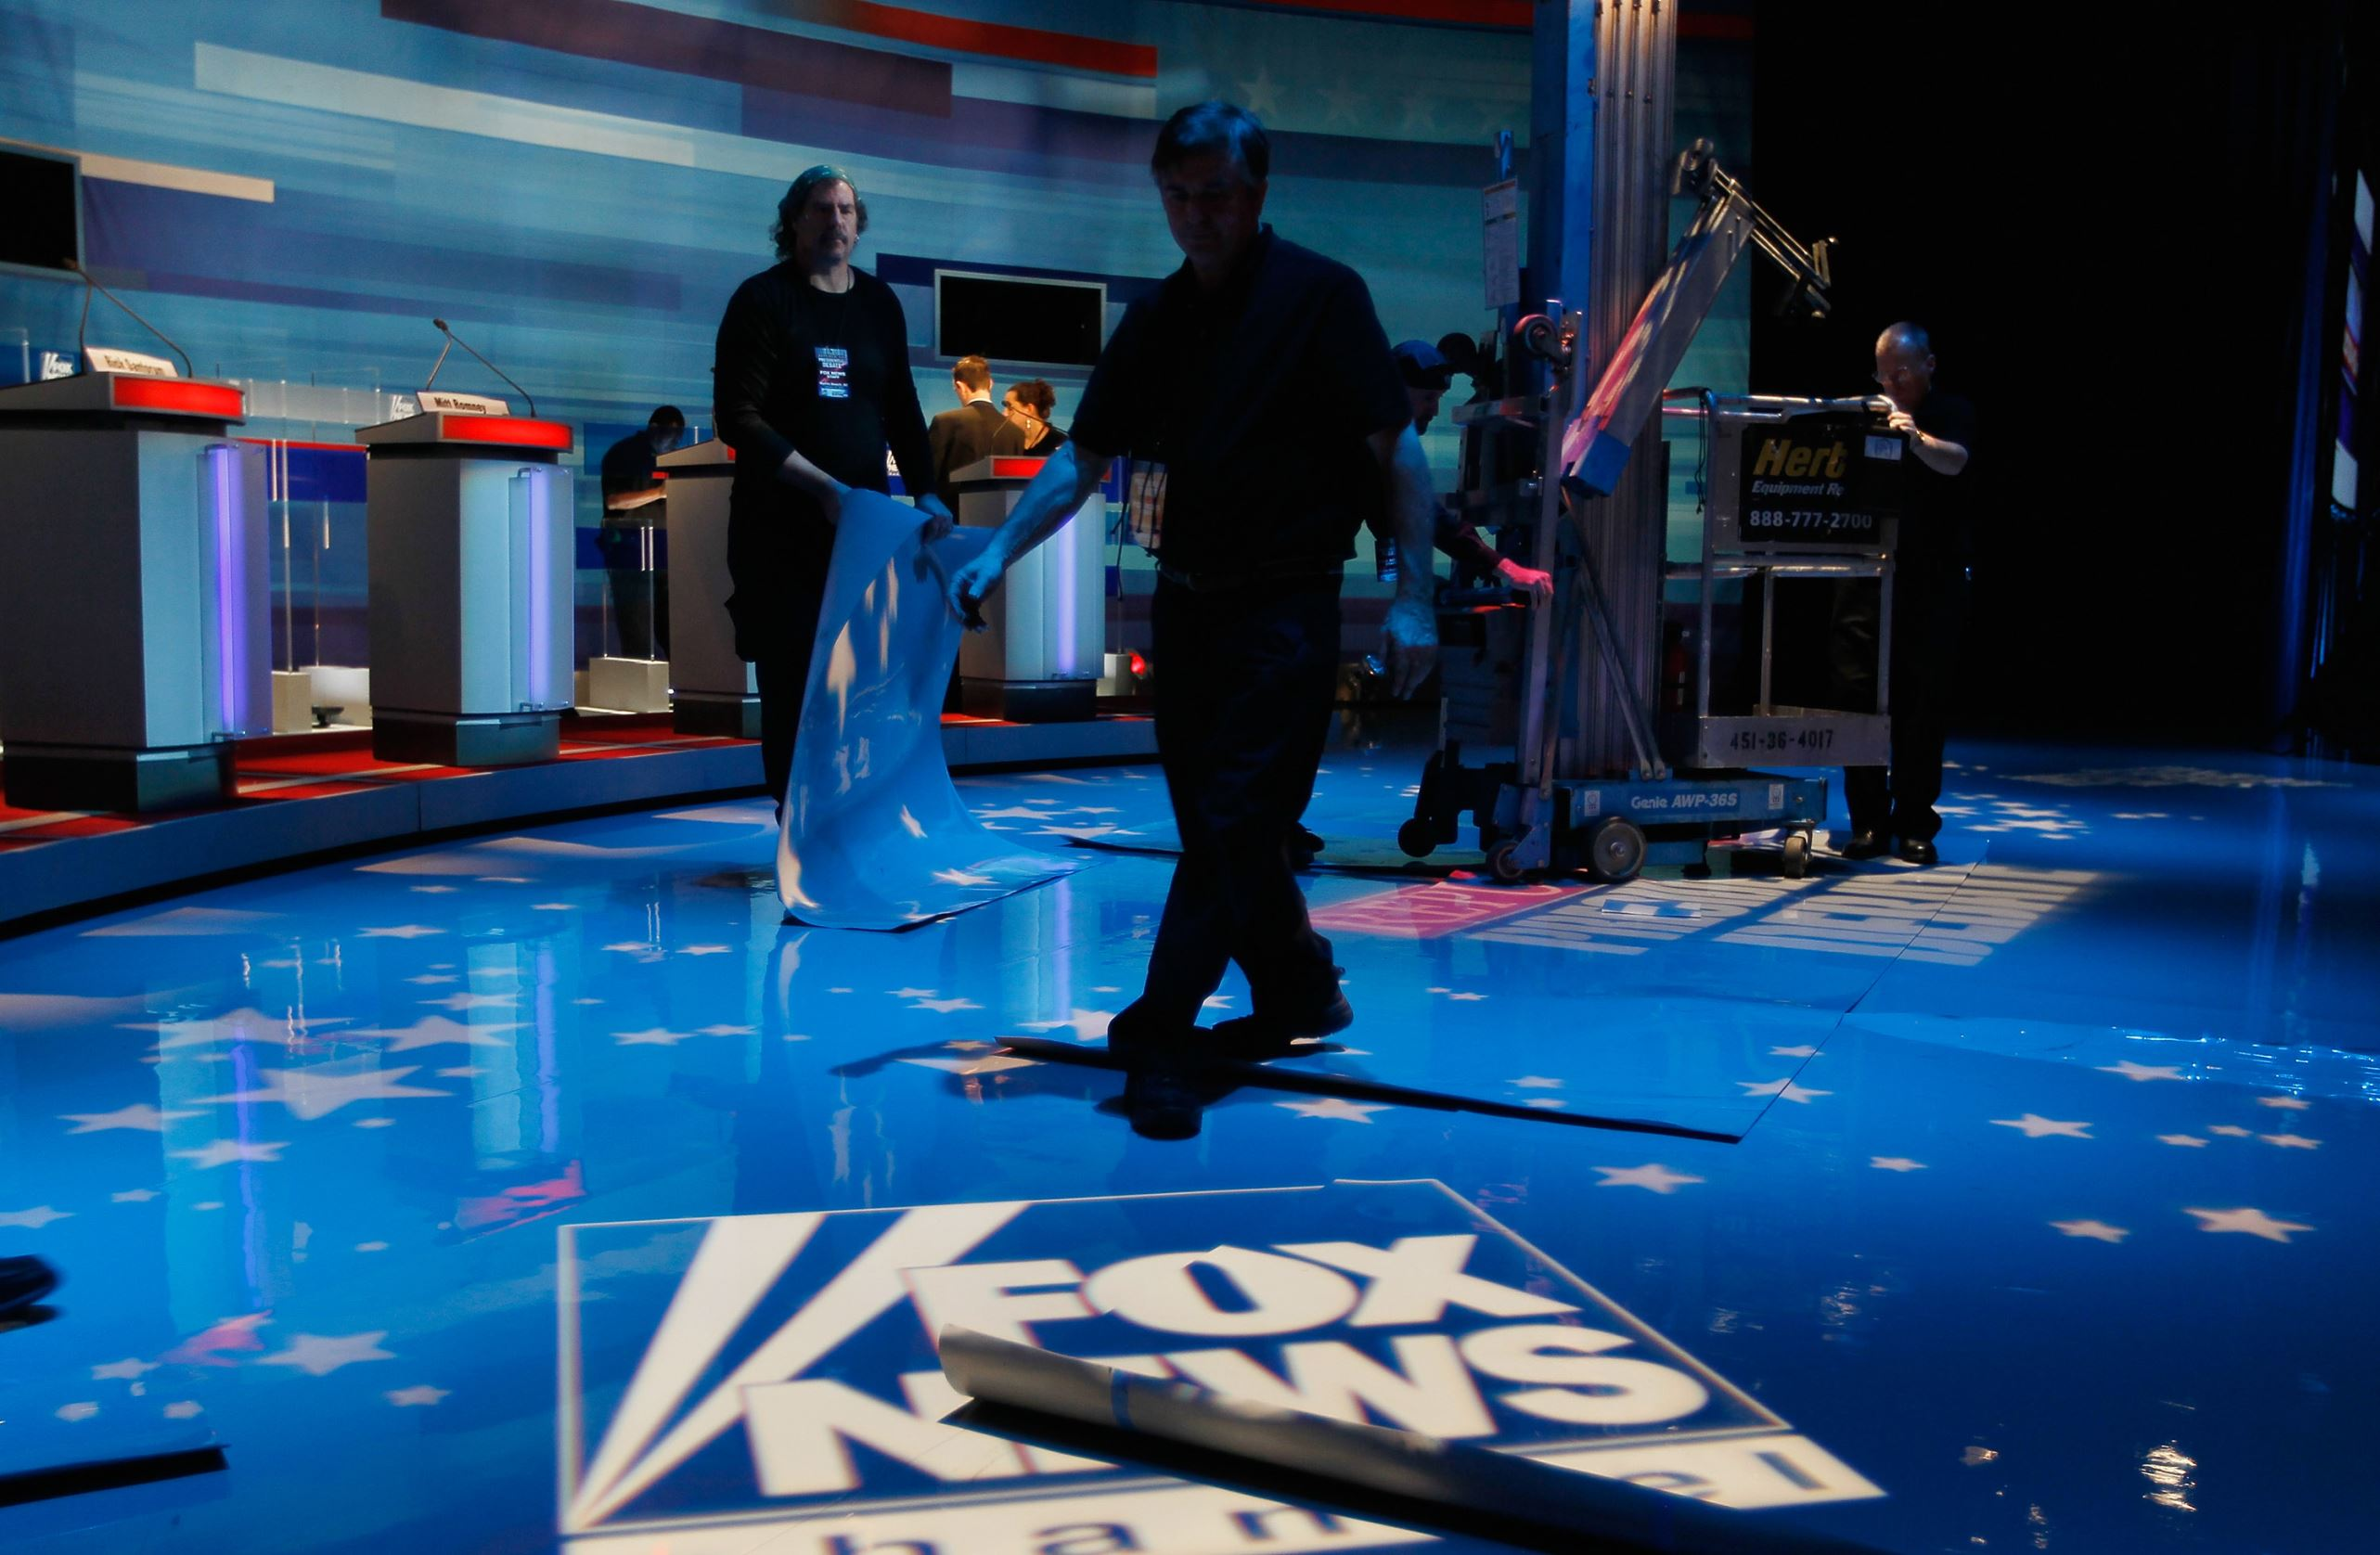 Workers prepare the stage for the Fox News/Wall Street Journal/South Carolina GOP debate at the Sheraton Myrtle Beach Convention Center on January 16, 2012 in Myrtle Beach, South Carolina.